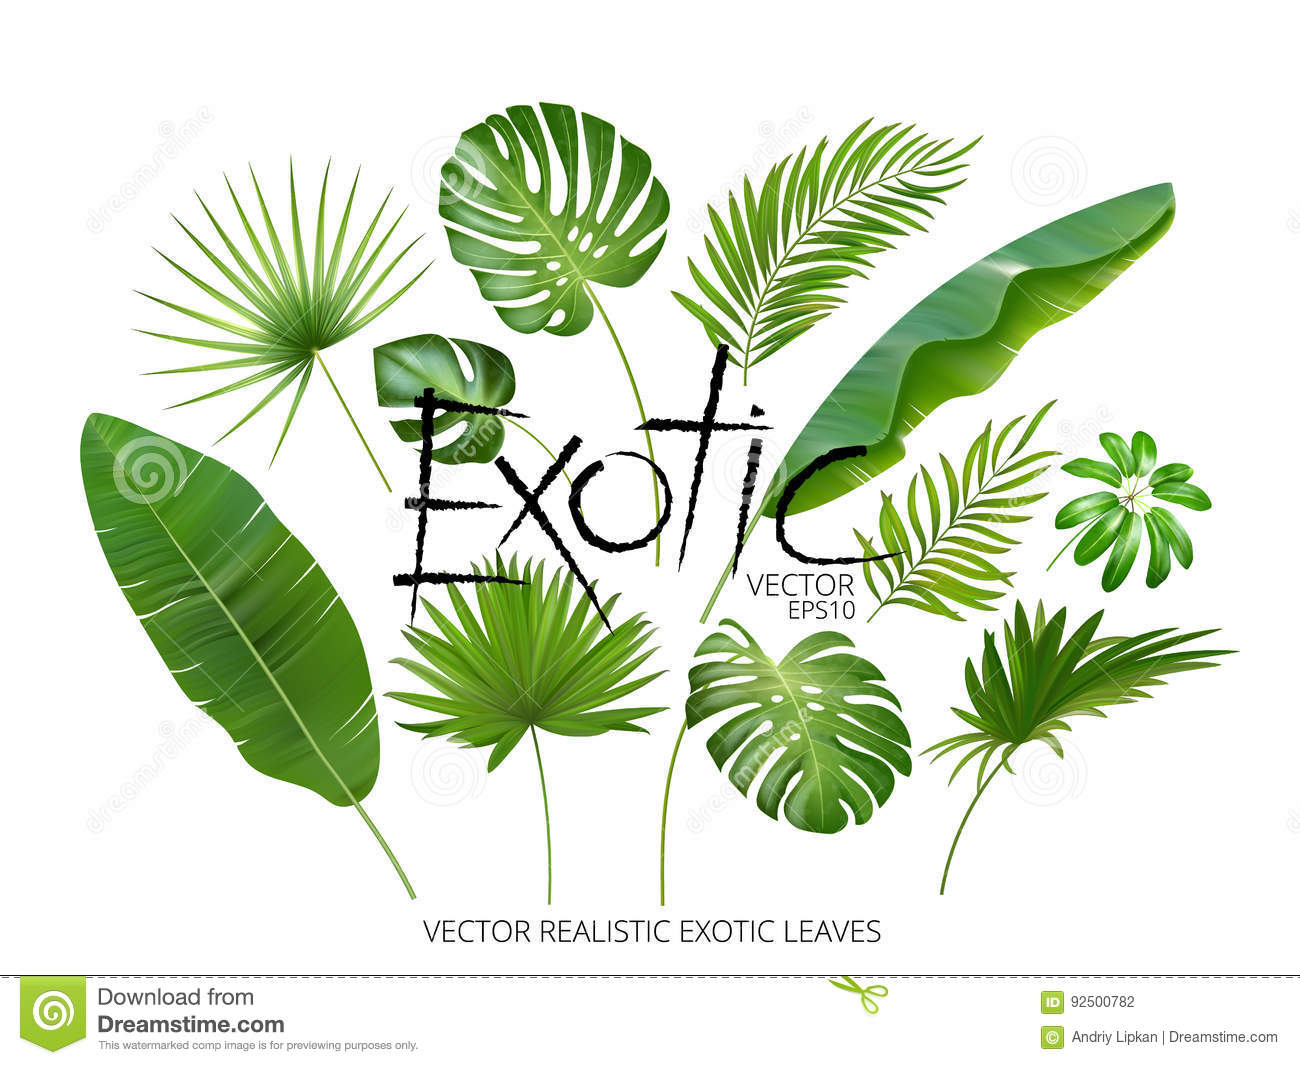 Vector tropical exotic leaves, realistic jungle leaves set isolated on white background. Palm leaf collection. Quality